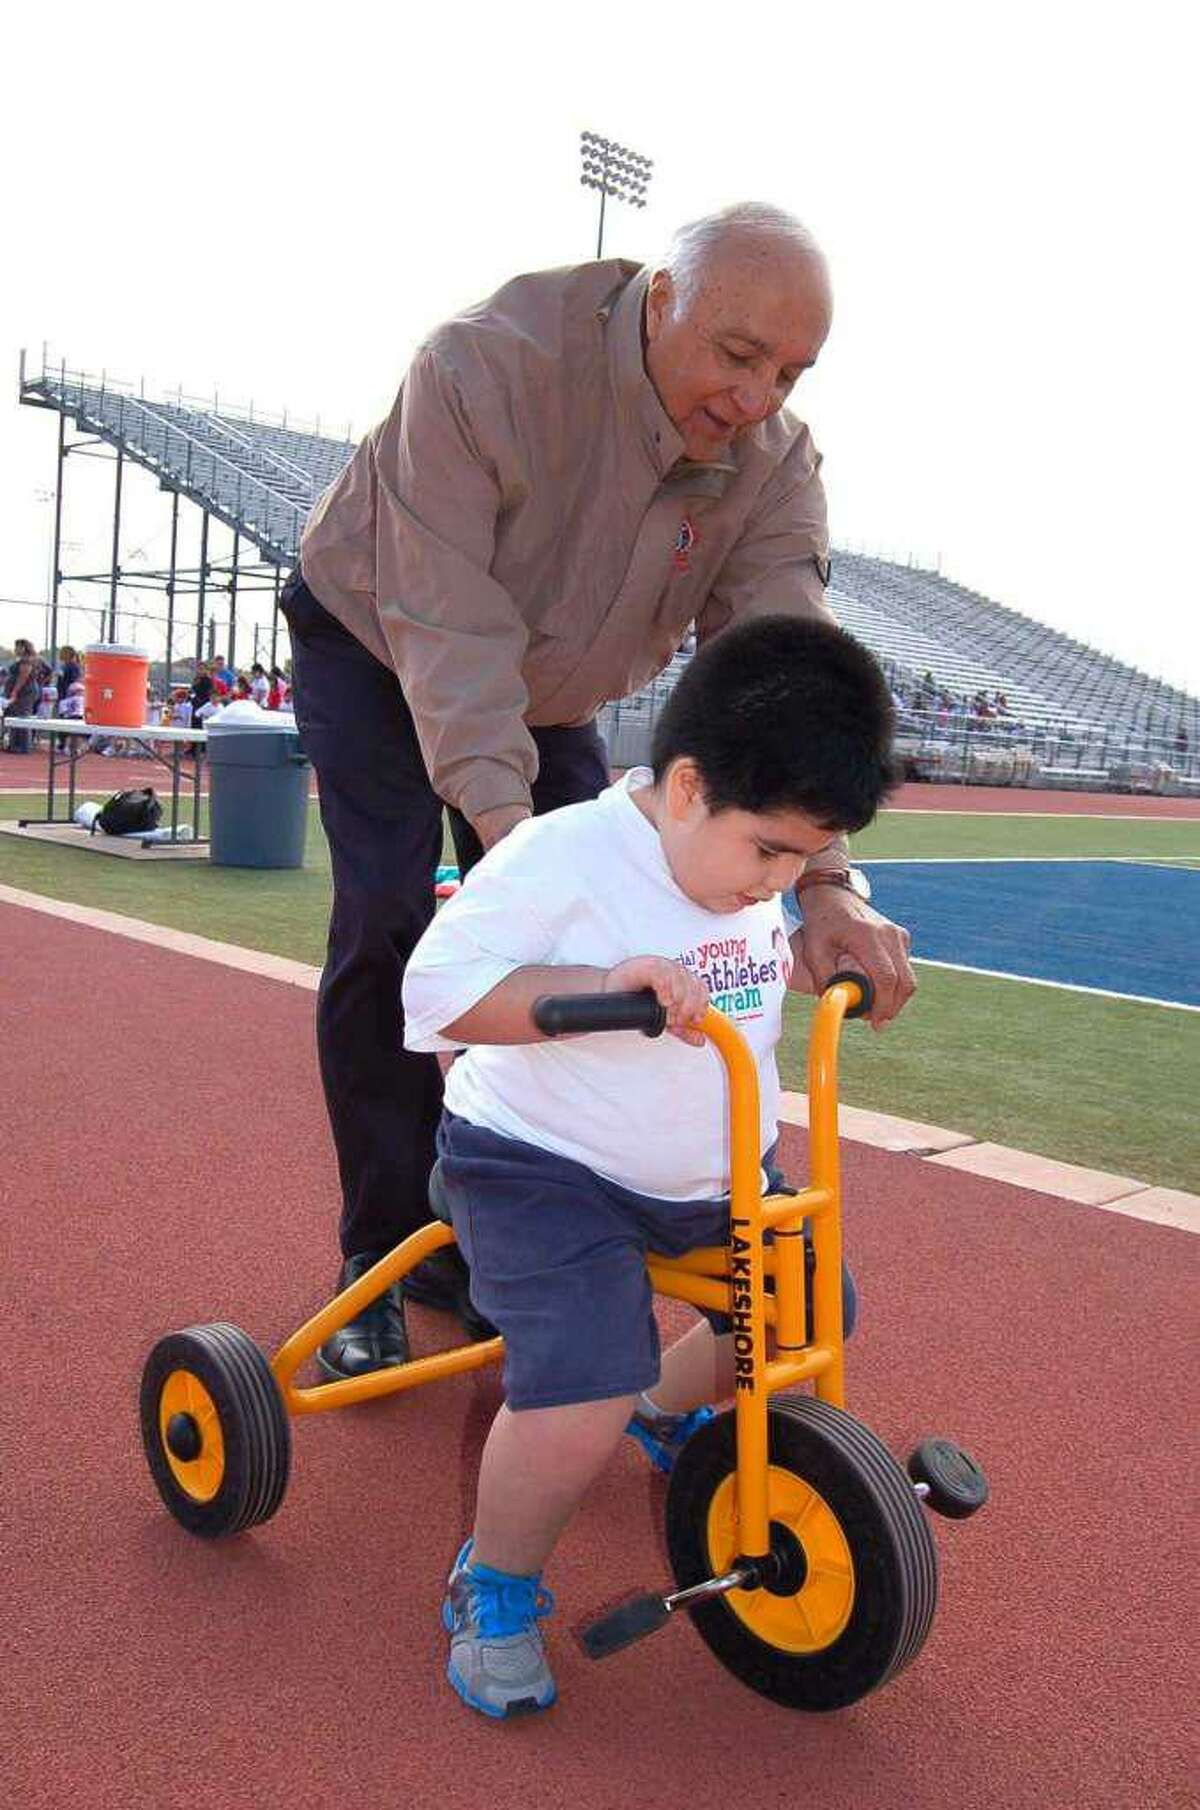 Longtime UISD Superintendent Roberto Santos works with a child during a previous event at the SAC. Santos is set to retire after 38 years with the district next June.